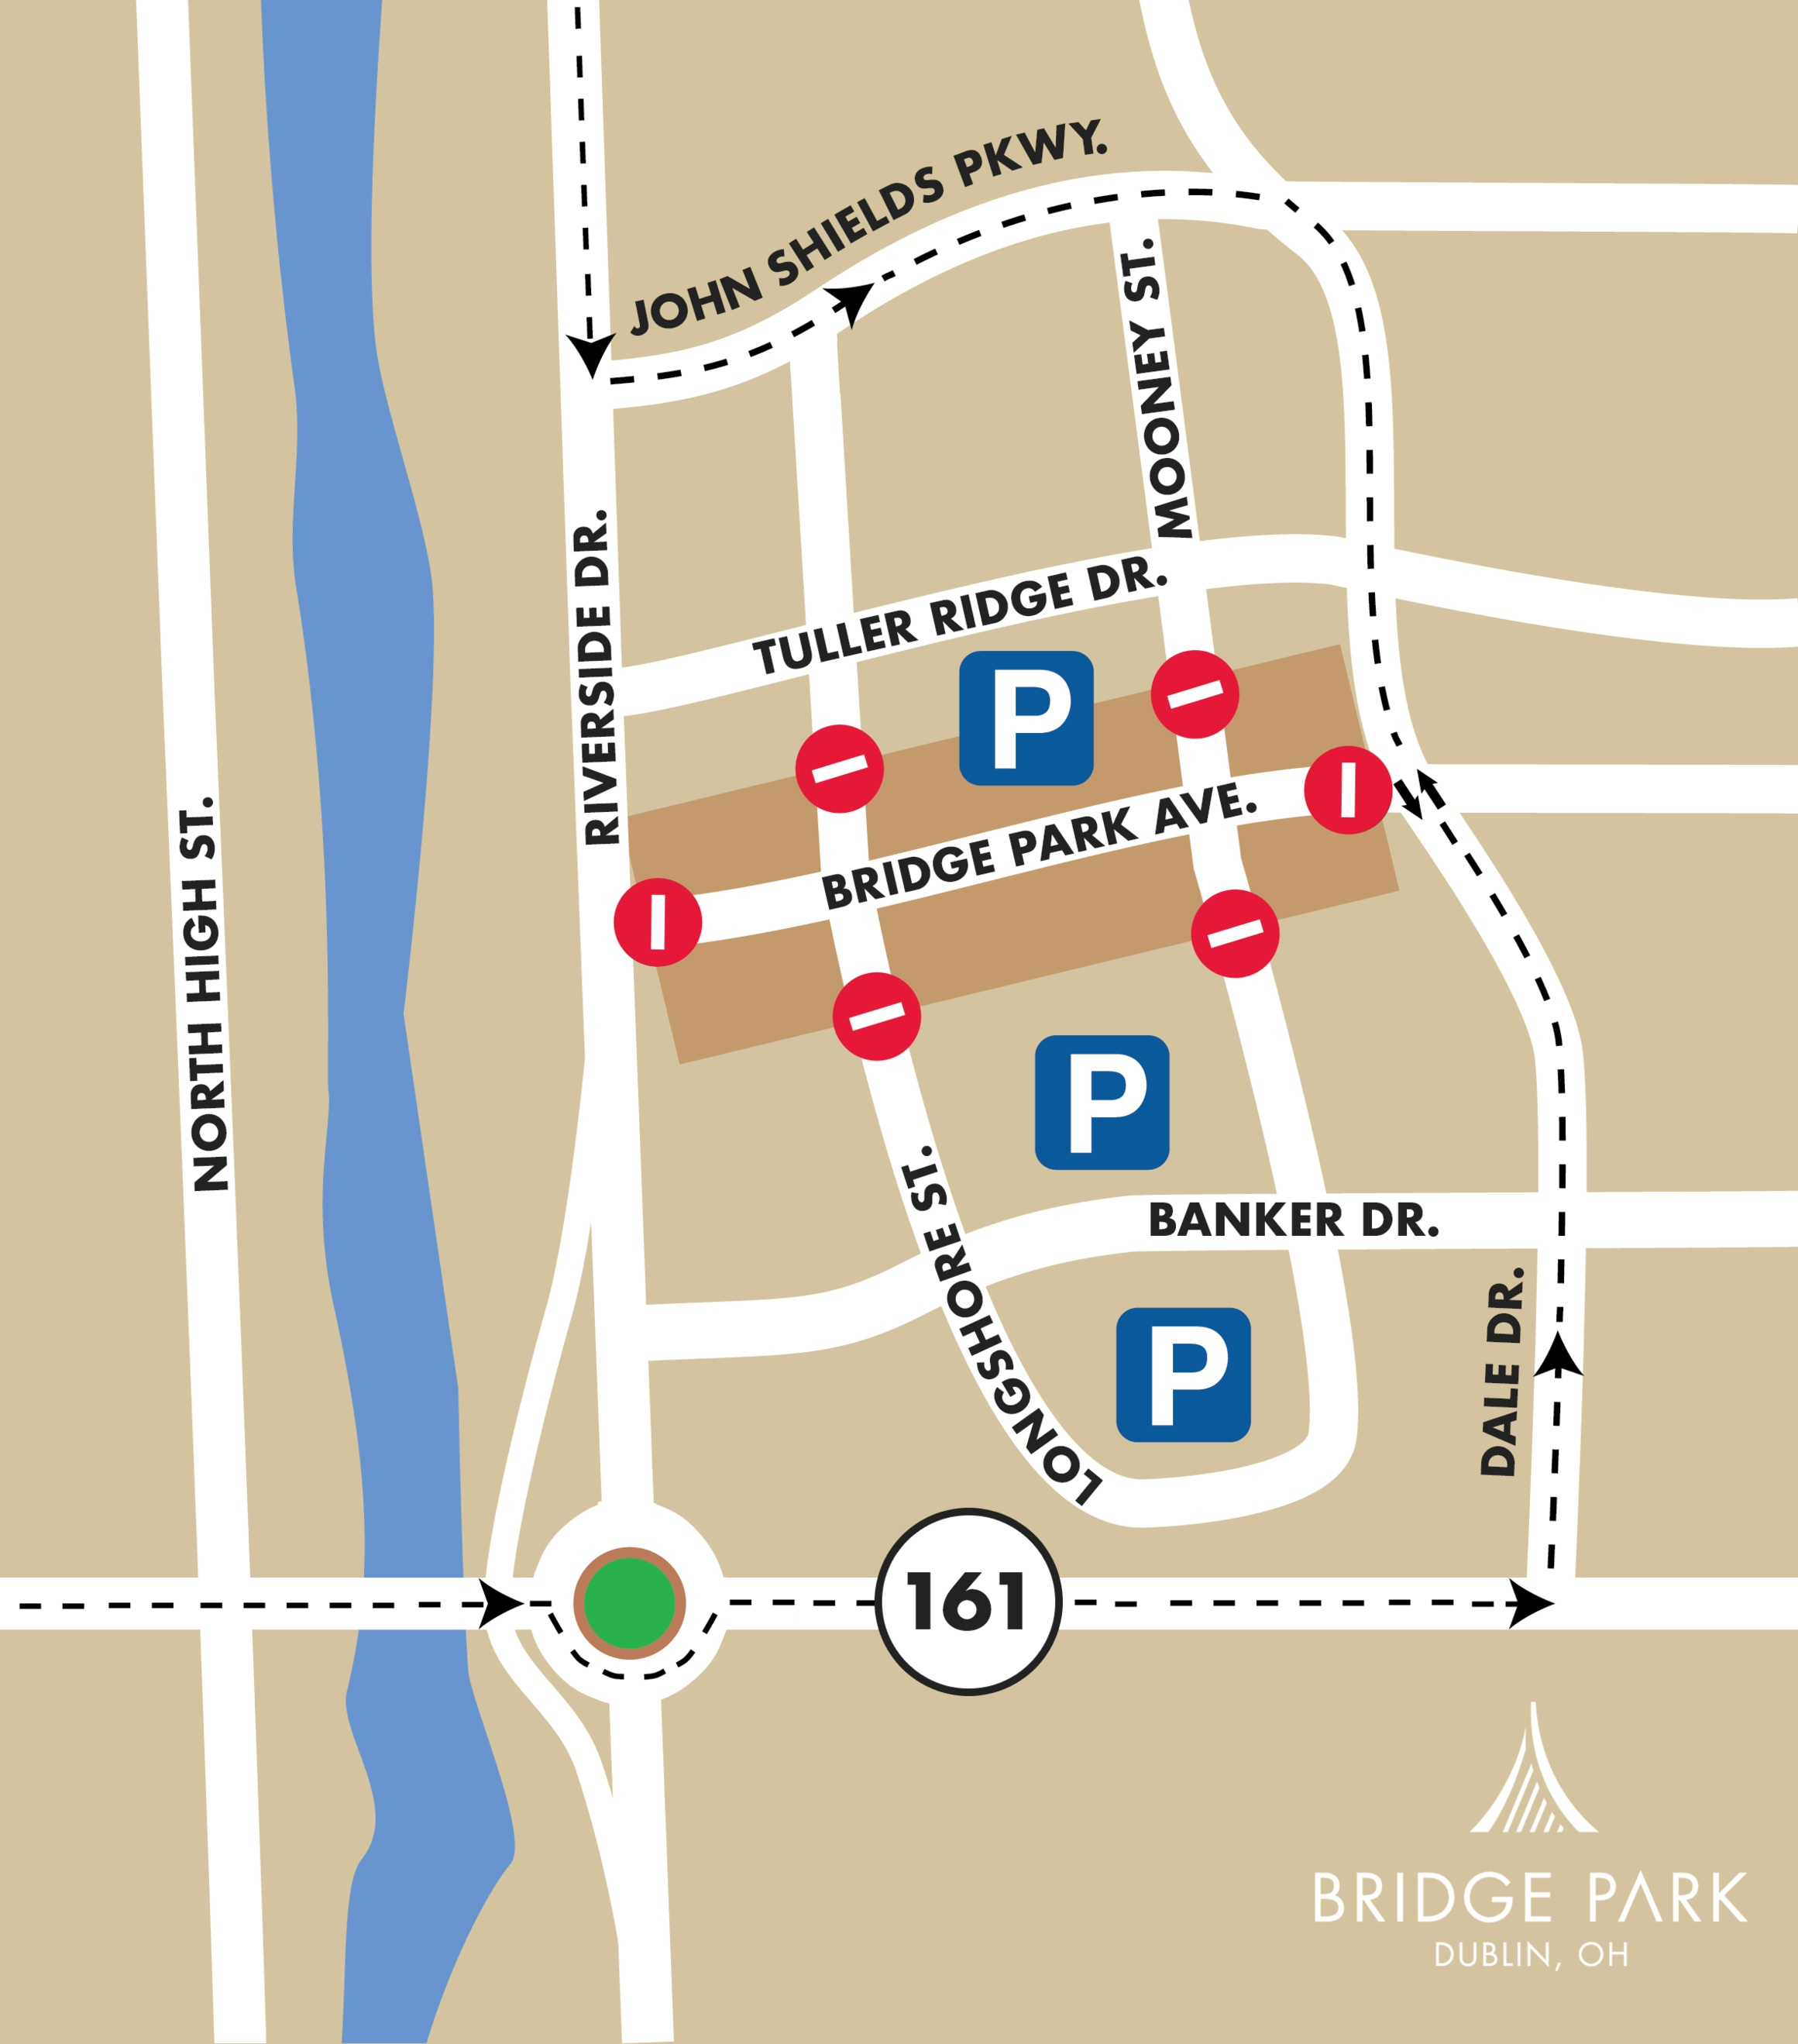 Bridge-Park-Map_Parking-2.jpg